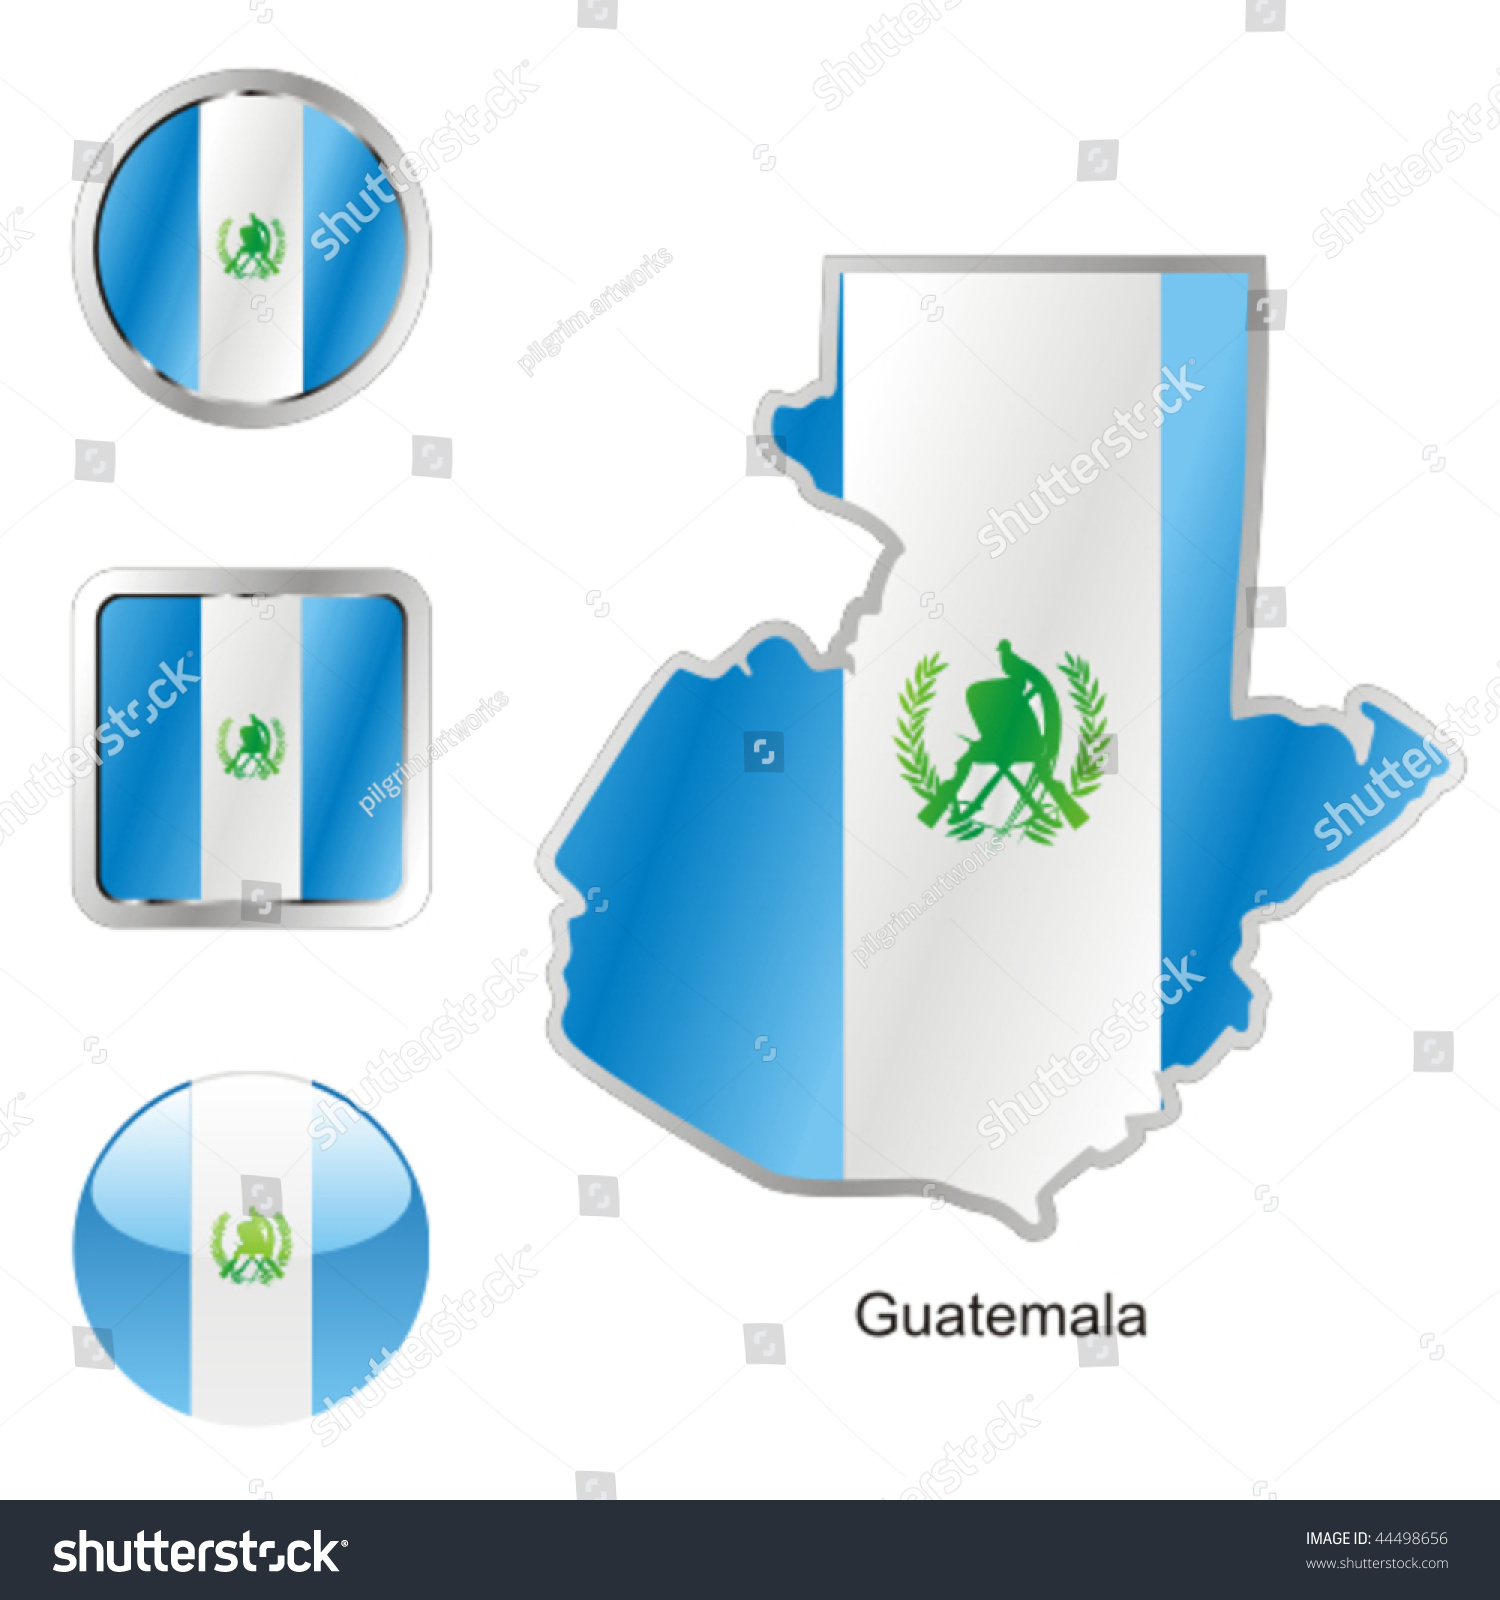 Fully Editable Vector Flag Guatemala Map Vector de stock44498656 ...